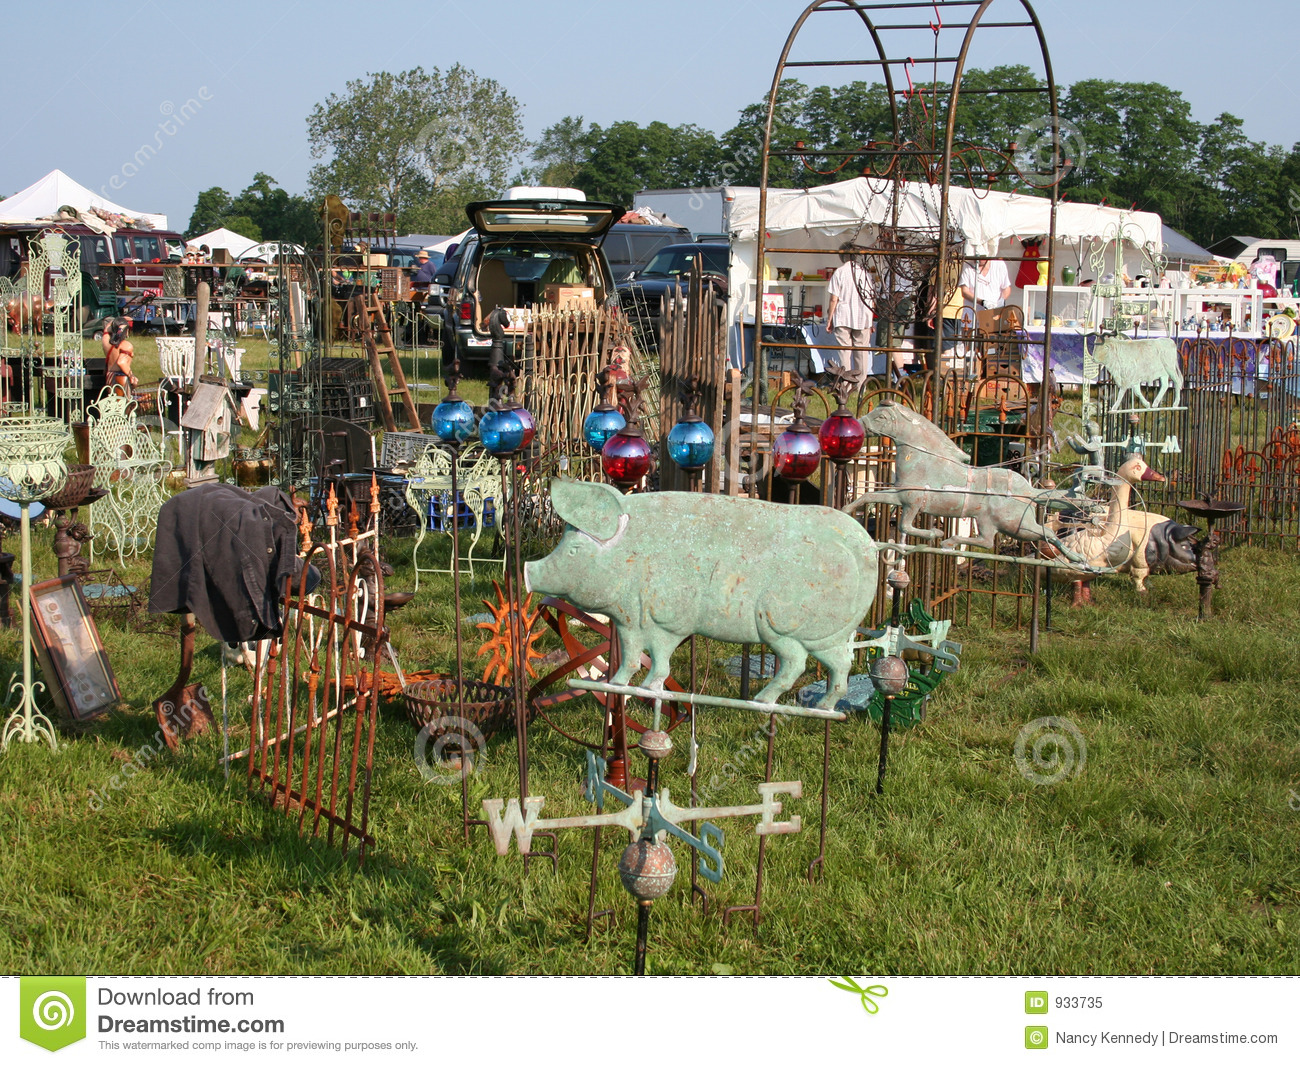 Outdoor Flea Market Royalty Free Stock Photo - Image: 933735